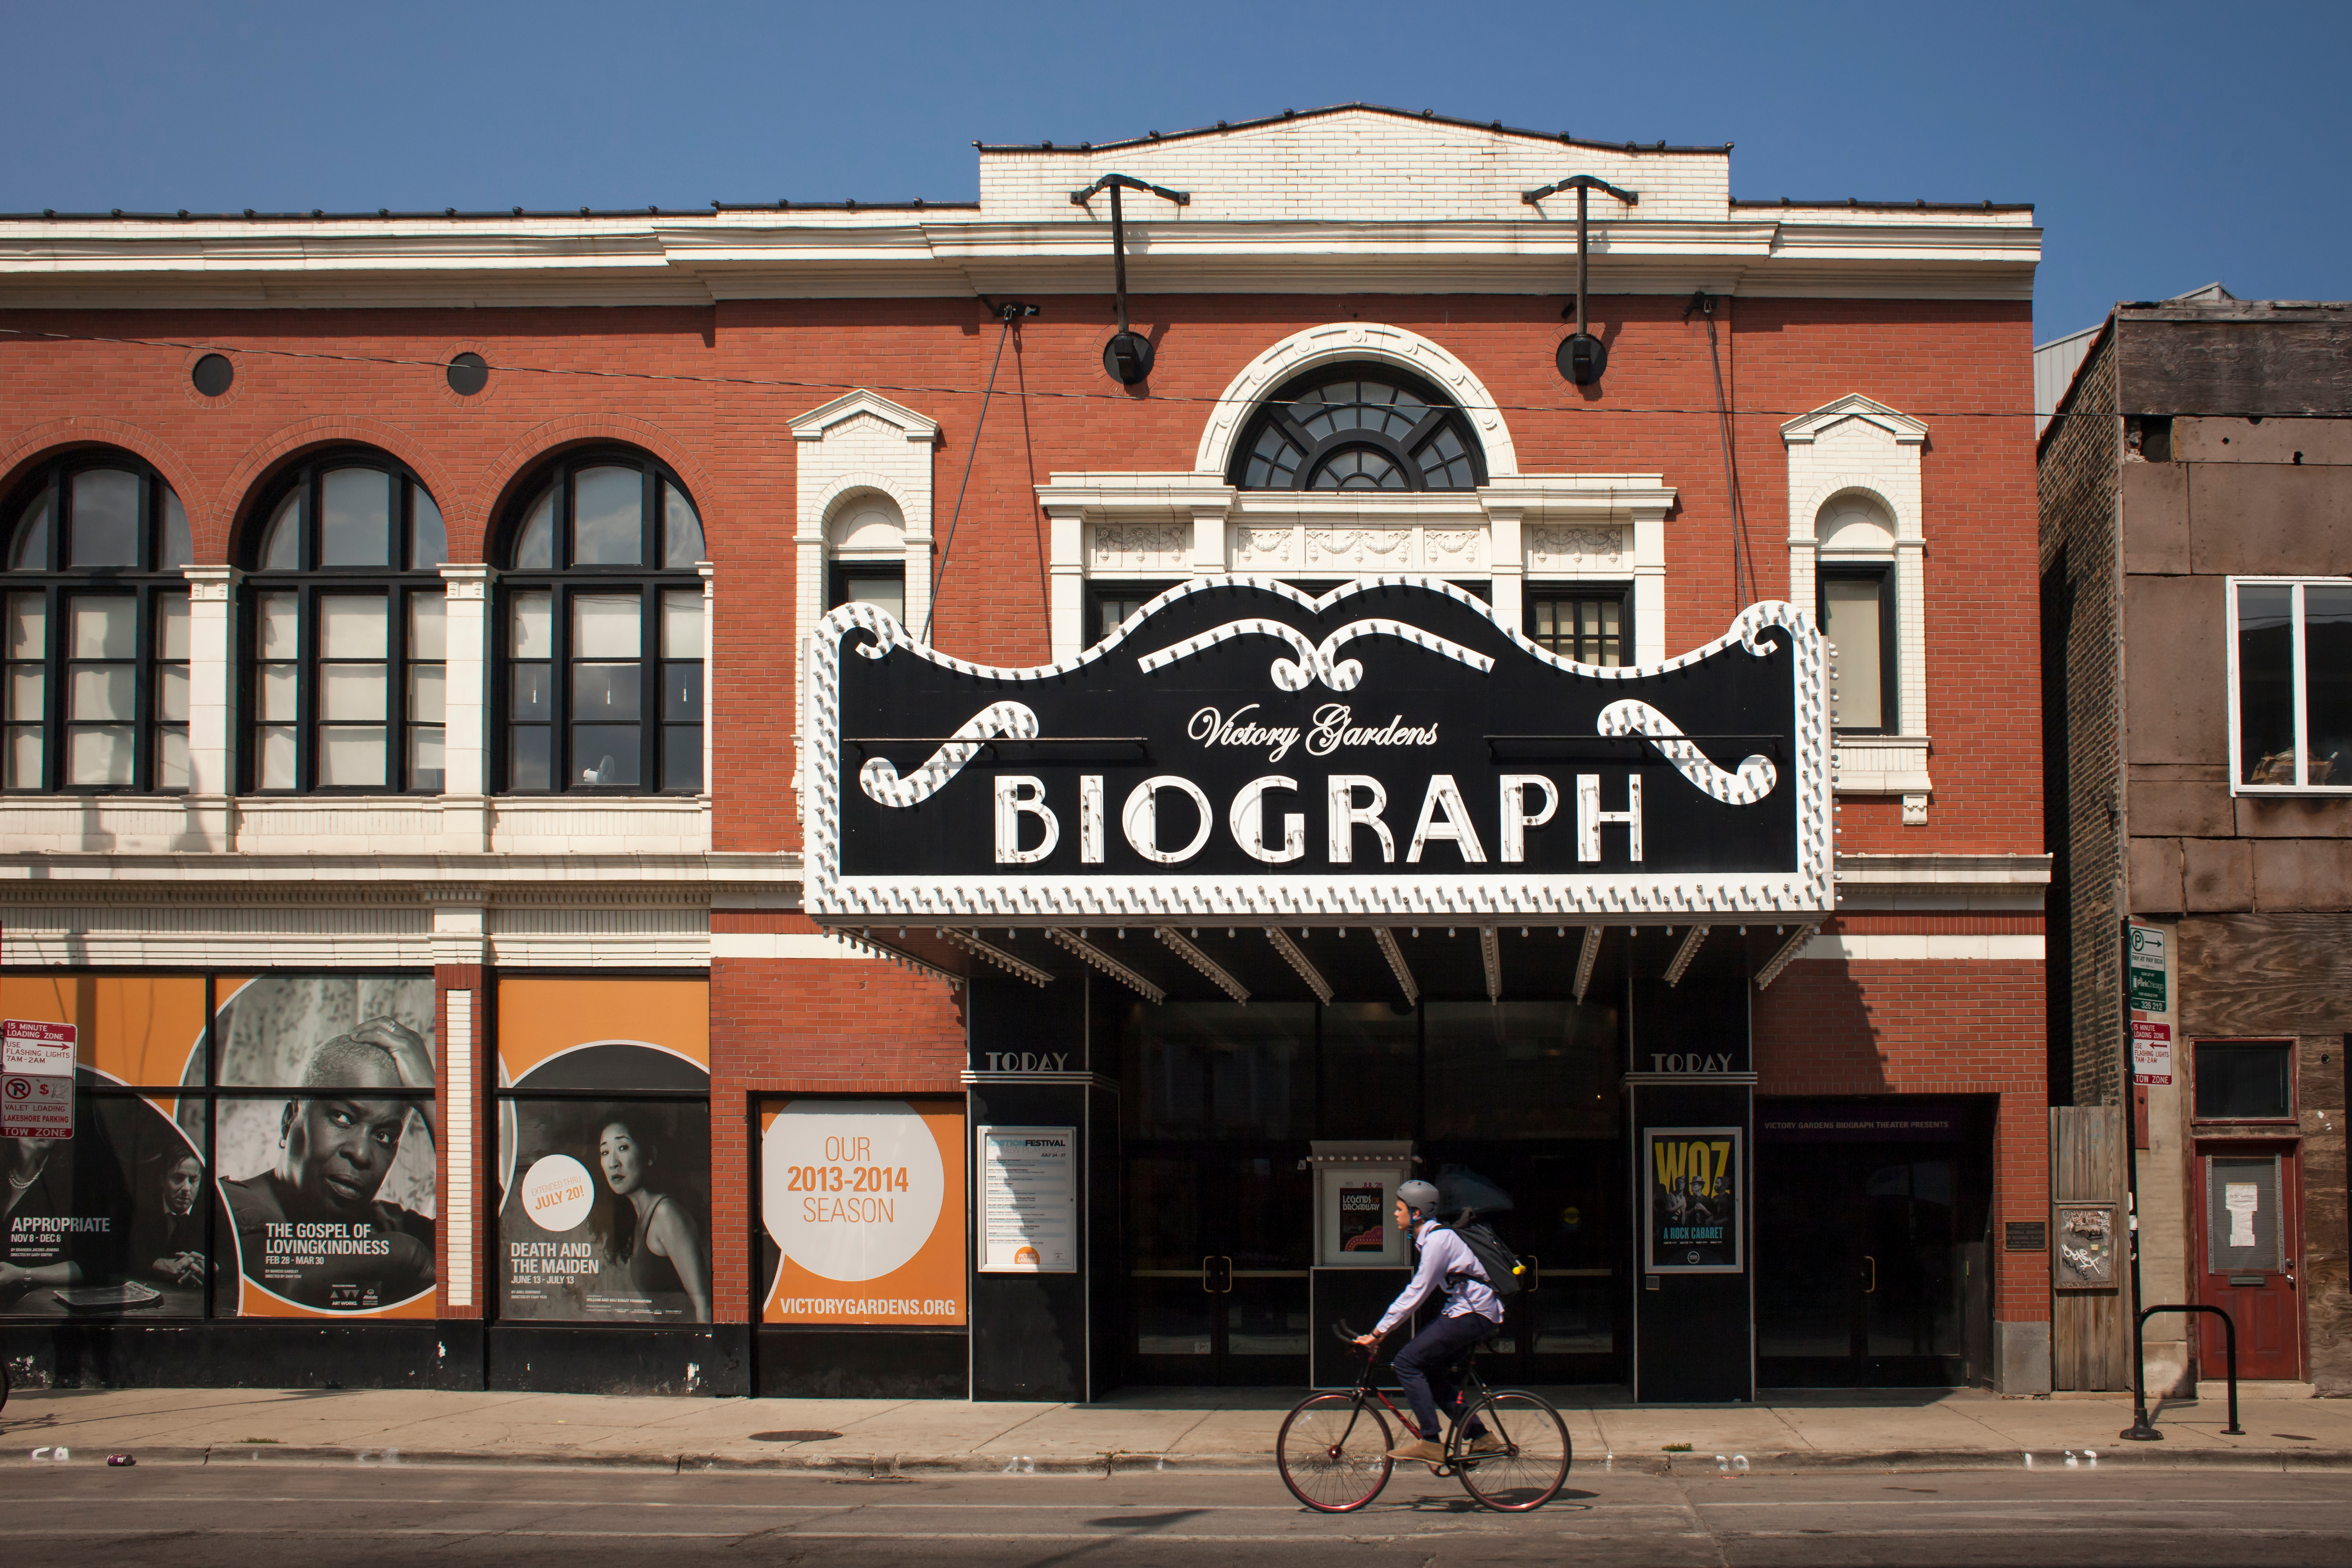 The exterior of a theater in Chicago. The building is red and there is black and white sign that reads: Victory Gardens Biograph.